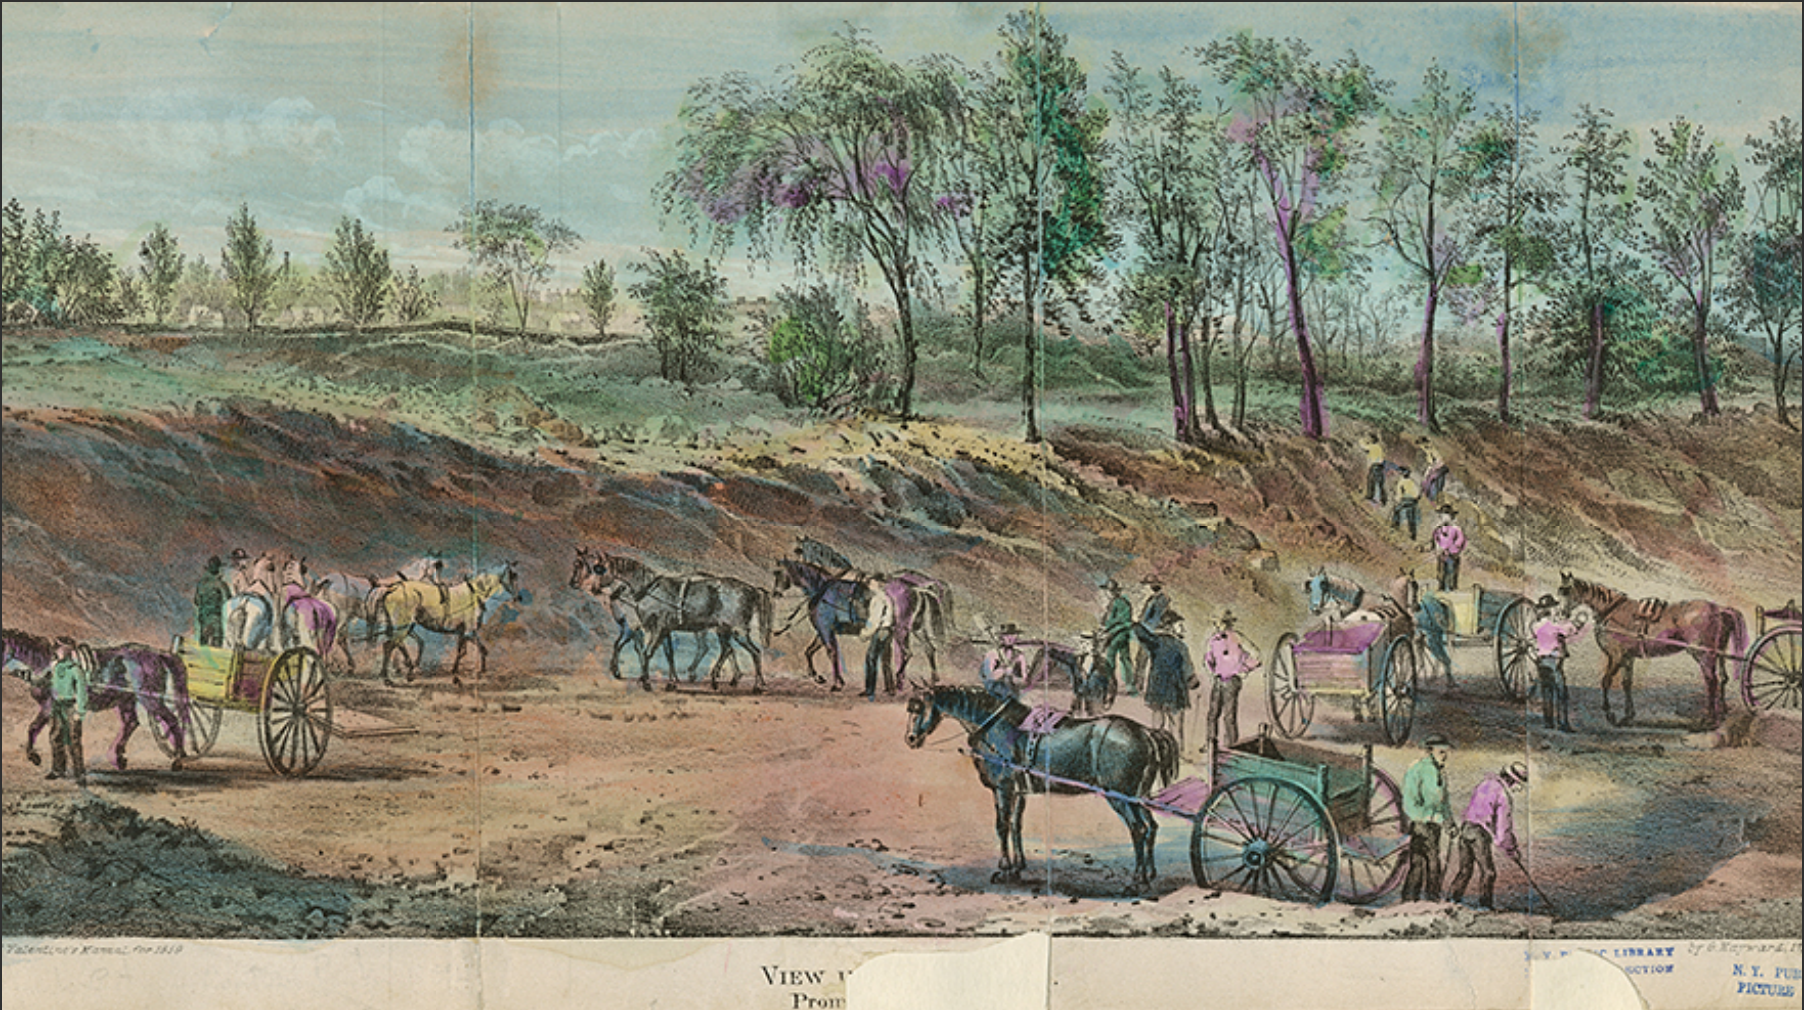 1859-view-in-central-park-new-york-ca-1859-1859-nypl